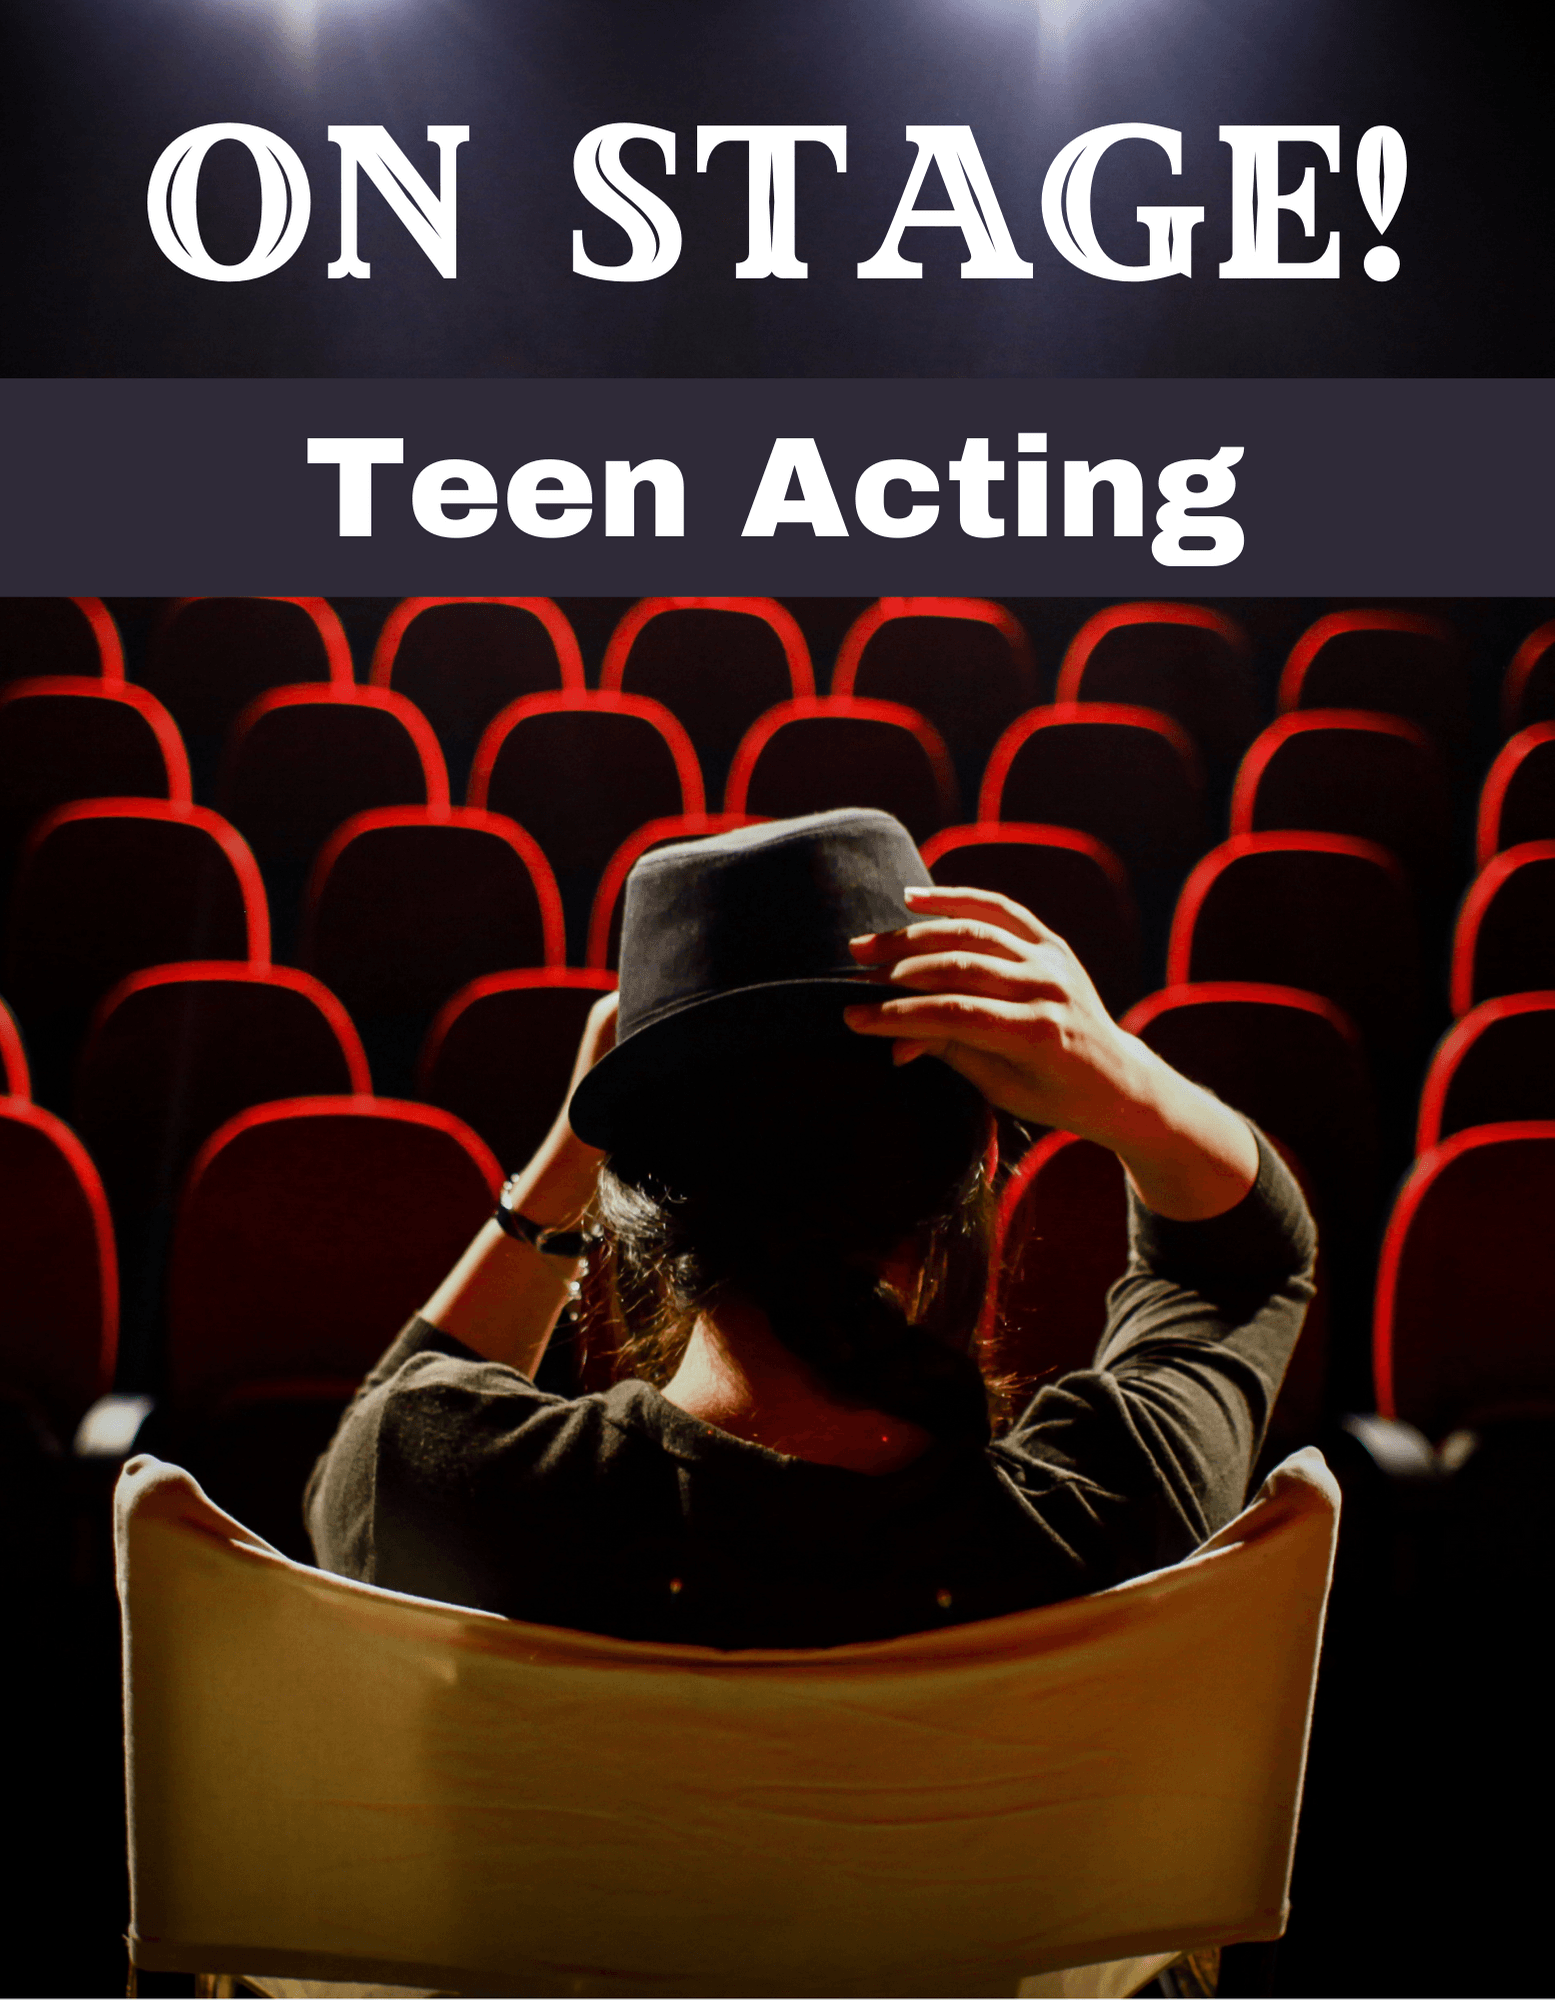 On Stage for Teens girl sitting on stage facing empty seats Opens in new window